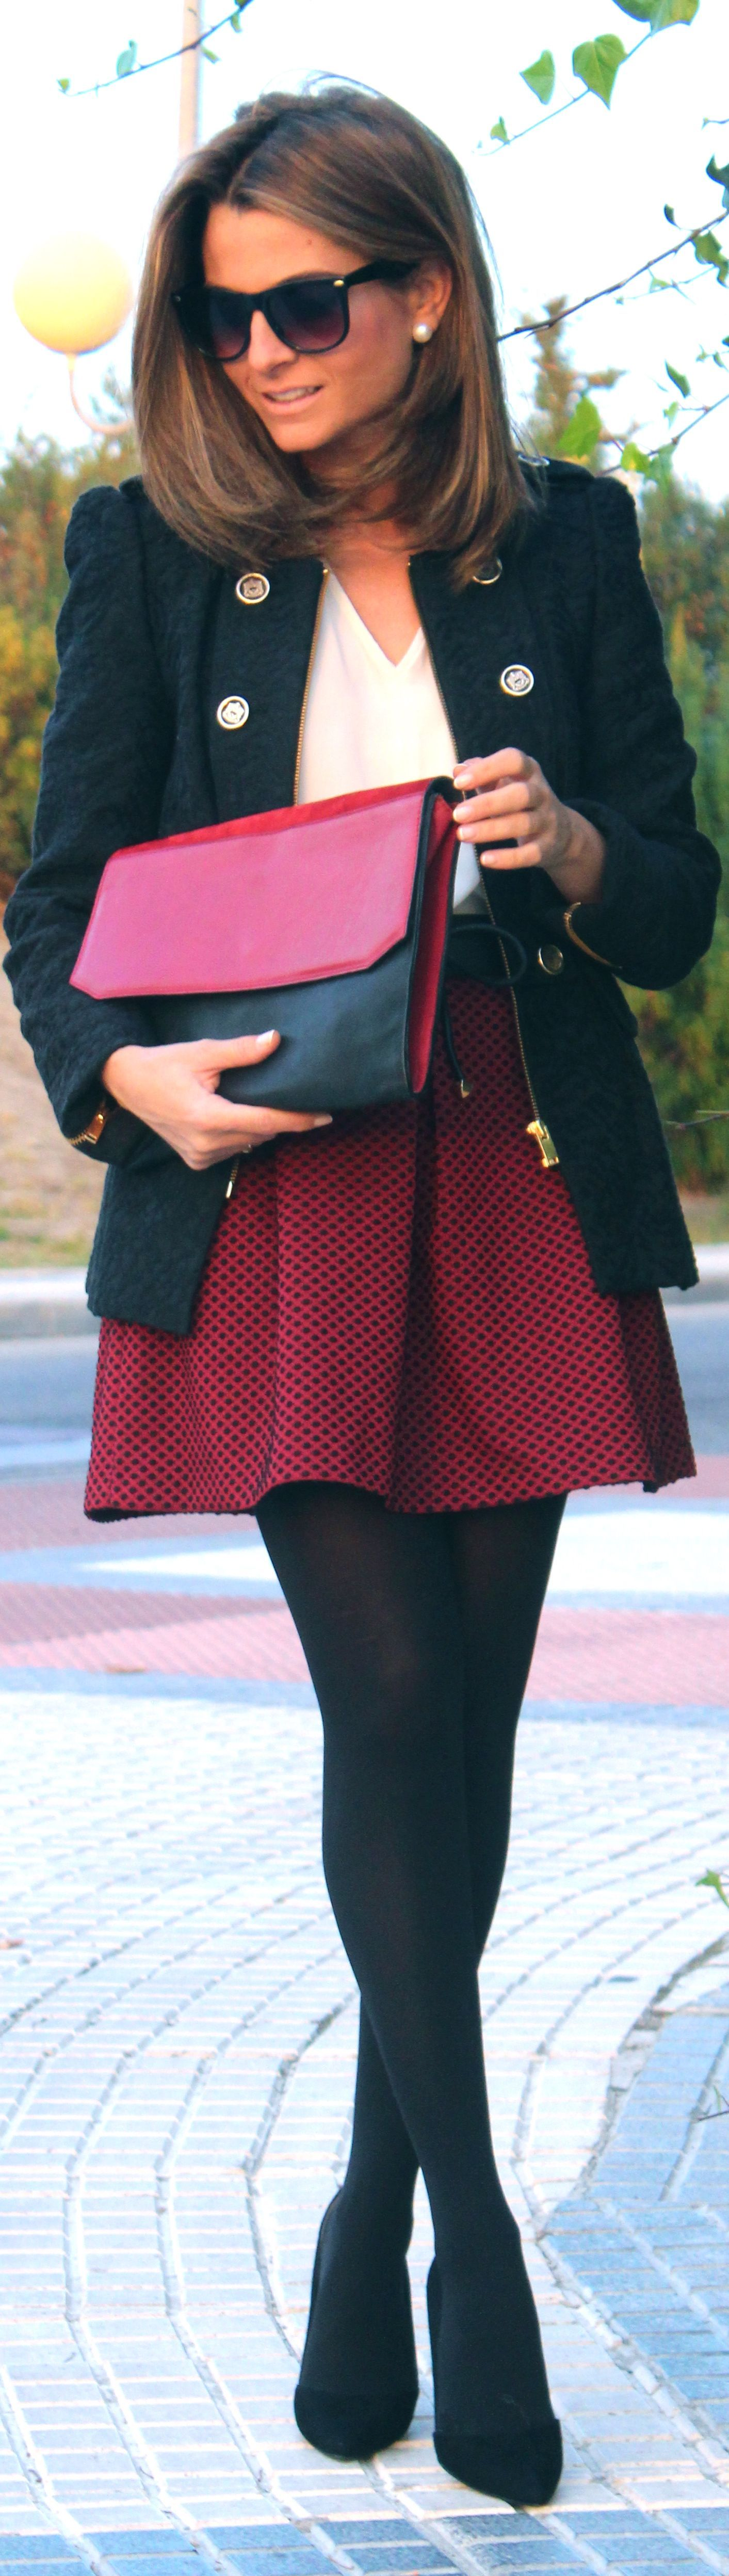 #burgundy / #bordeaux by Oh my Looks